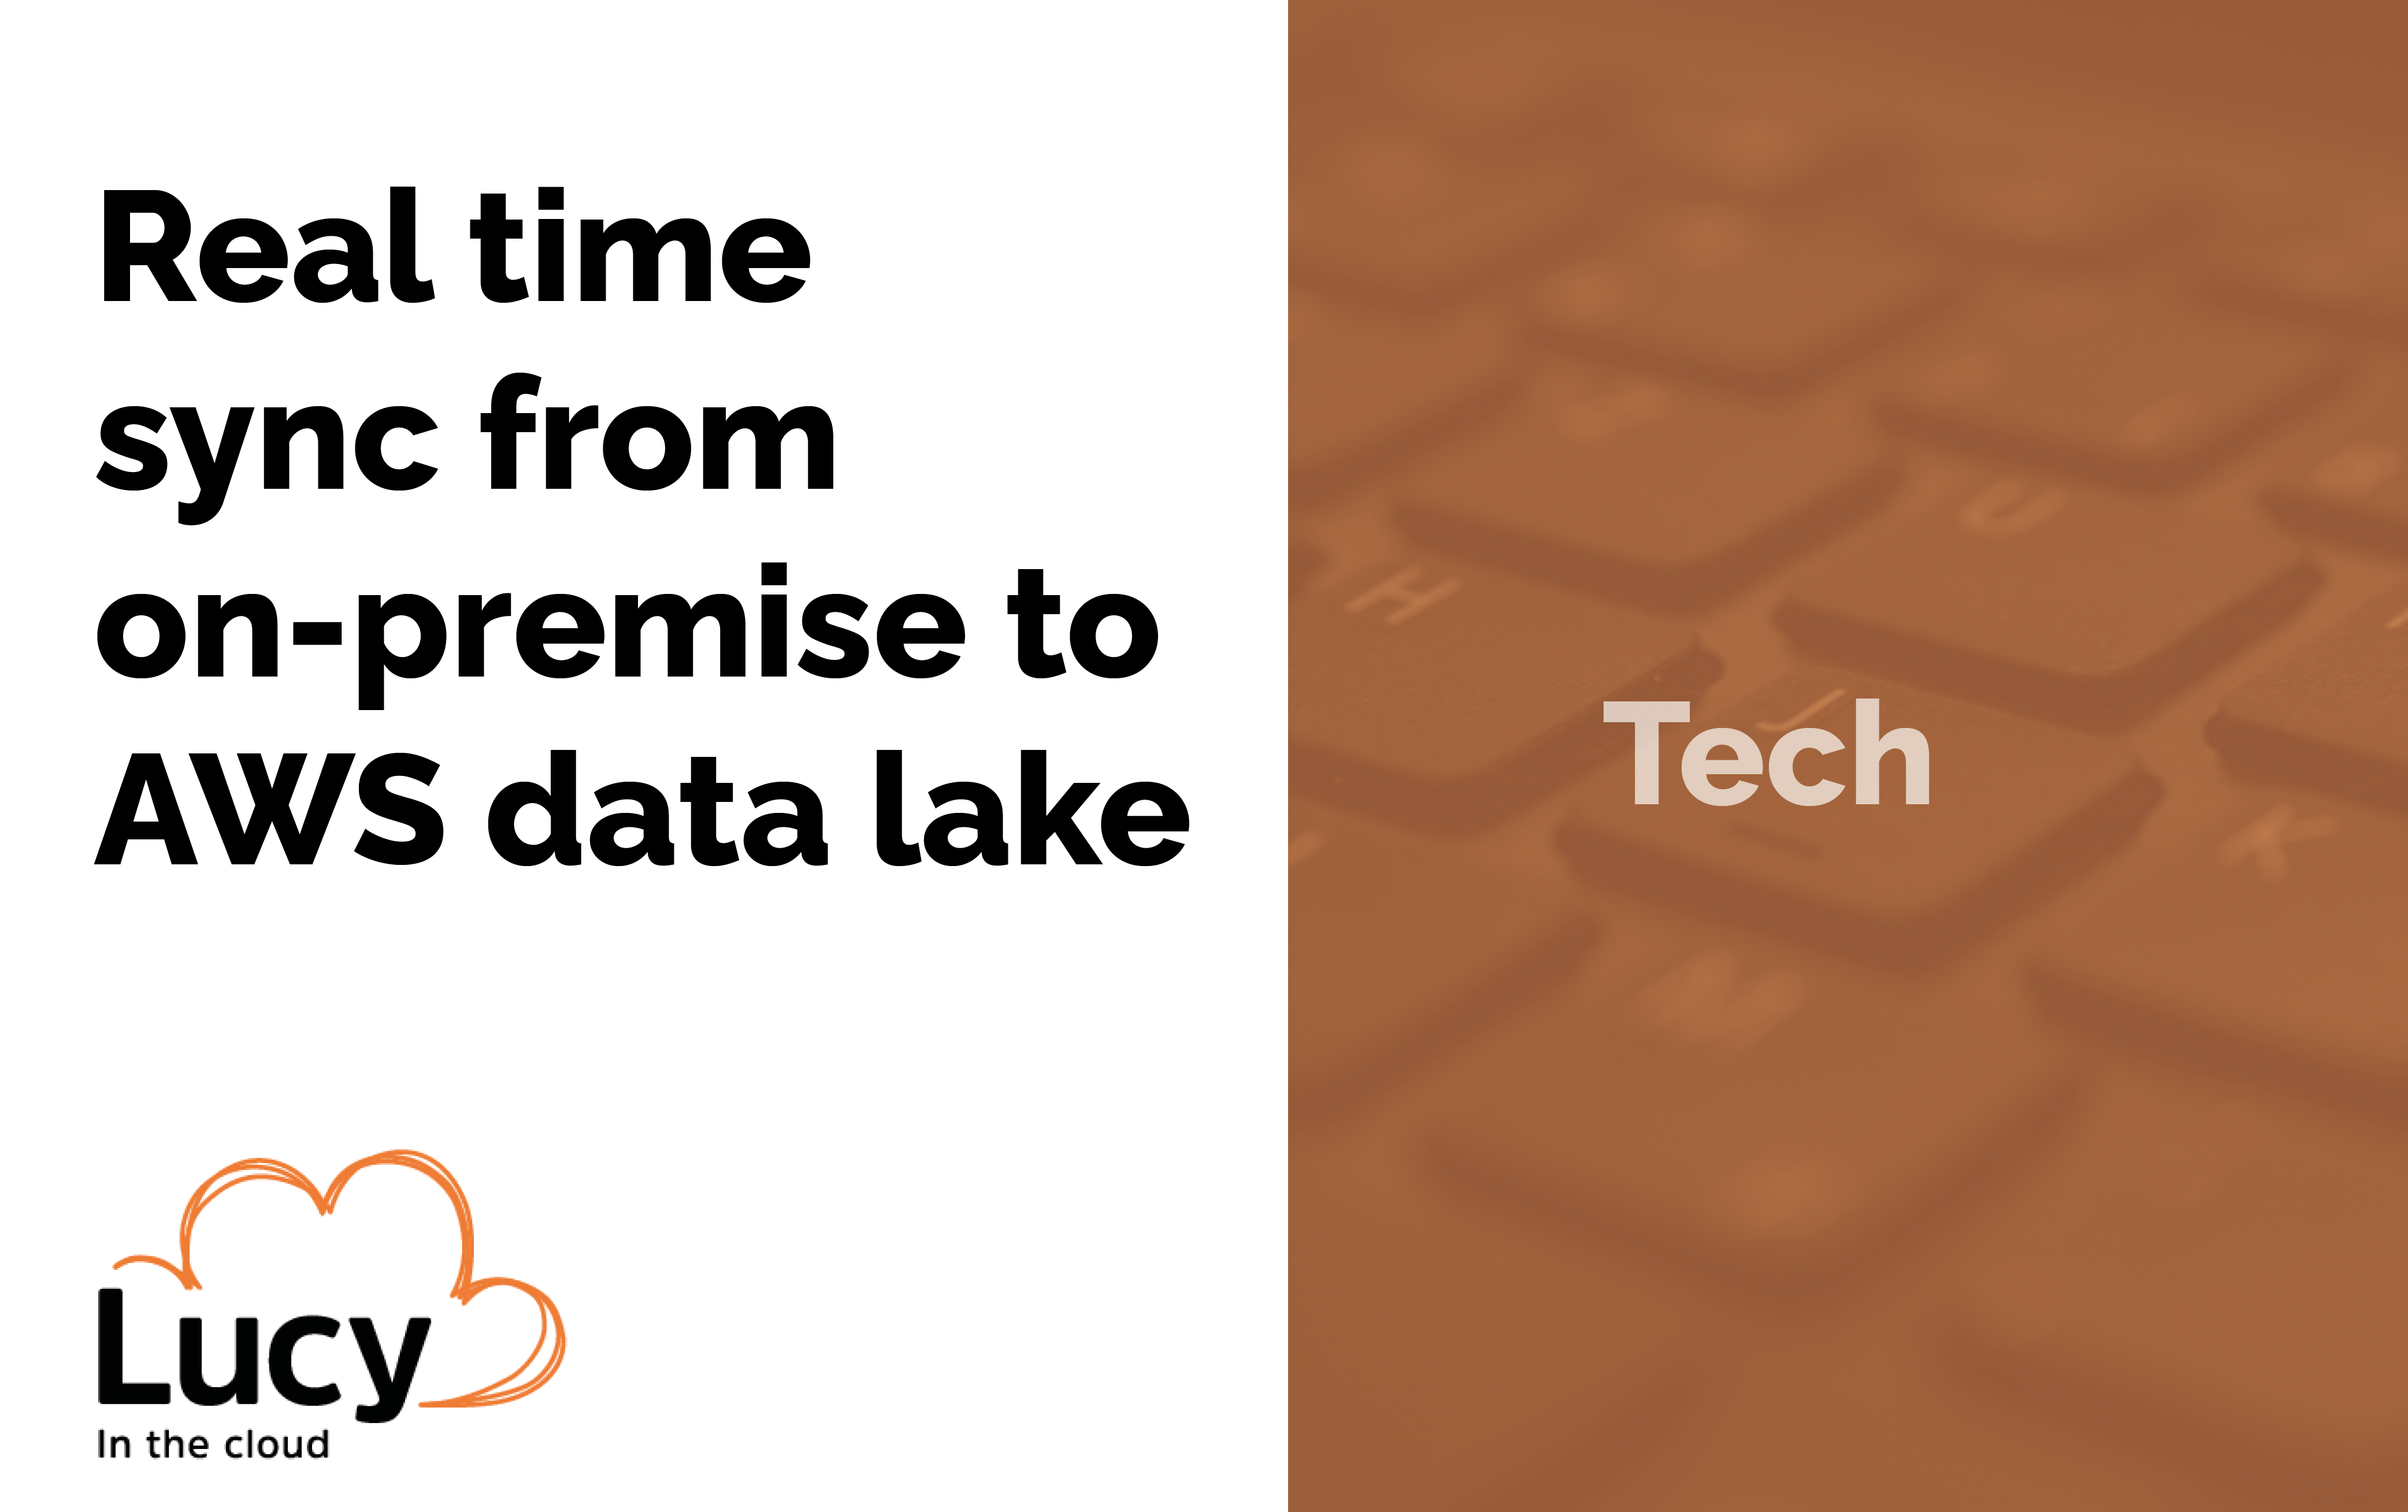 Real time sync from on-premise to AWS data lake